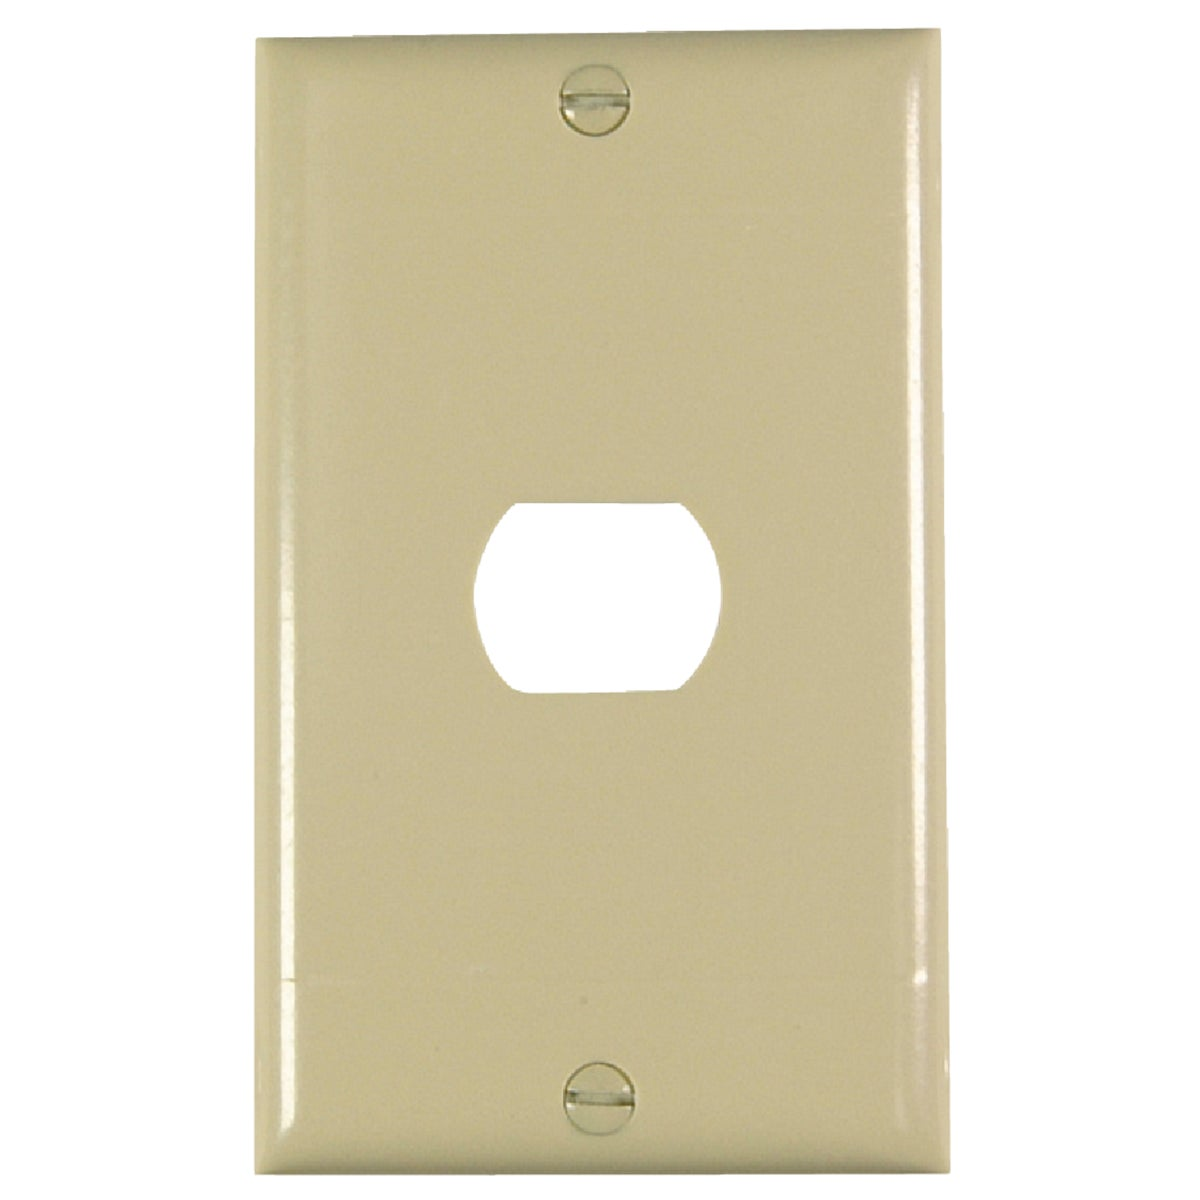 IV RIBBED WALL PLATE - K1-I by Pass Seymour Legrand